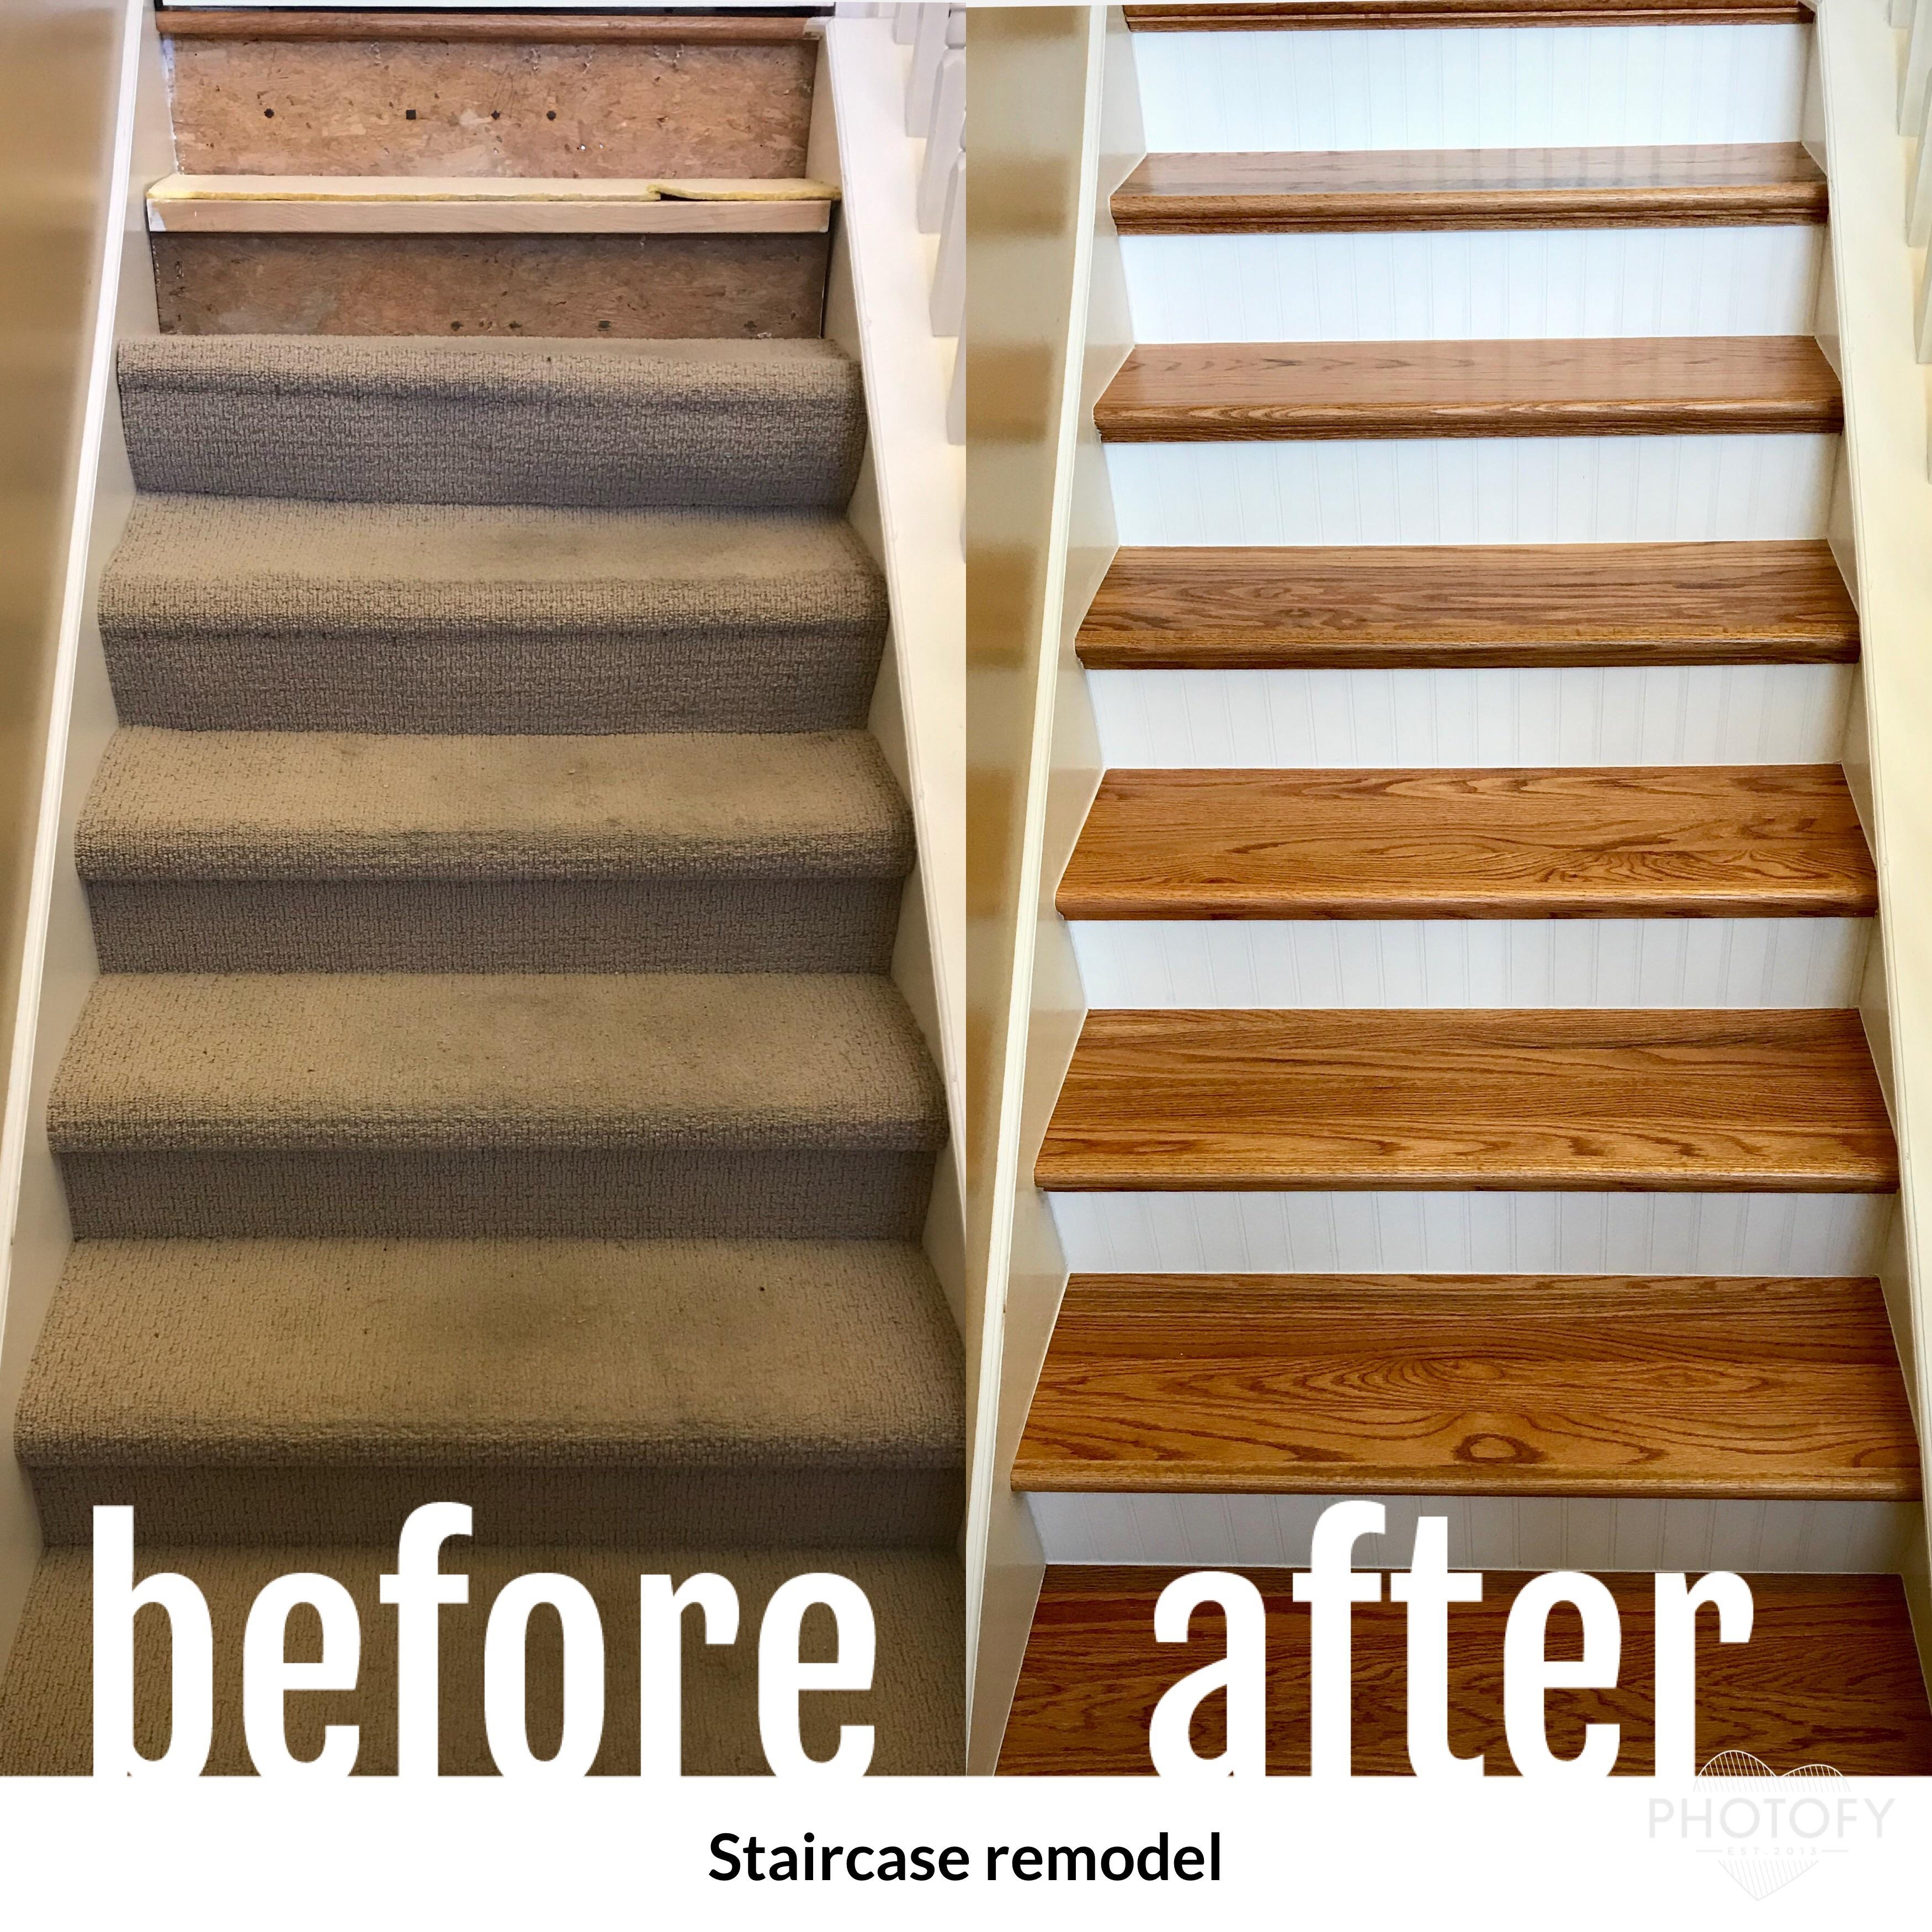 Staircase Project Max To Match Hardwood Floor At Top And Bottom   Matching Stairs To Hardwood Floors   Laminate Flooring   Refinishing Hardwood   Stain   Staircase   Wide Plank